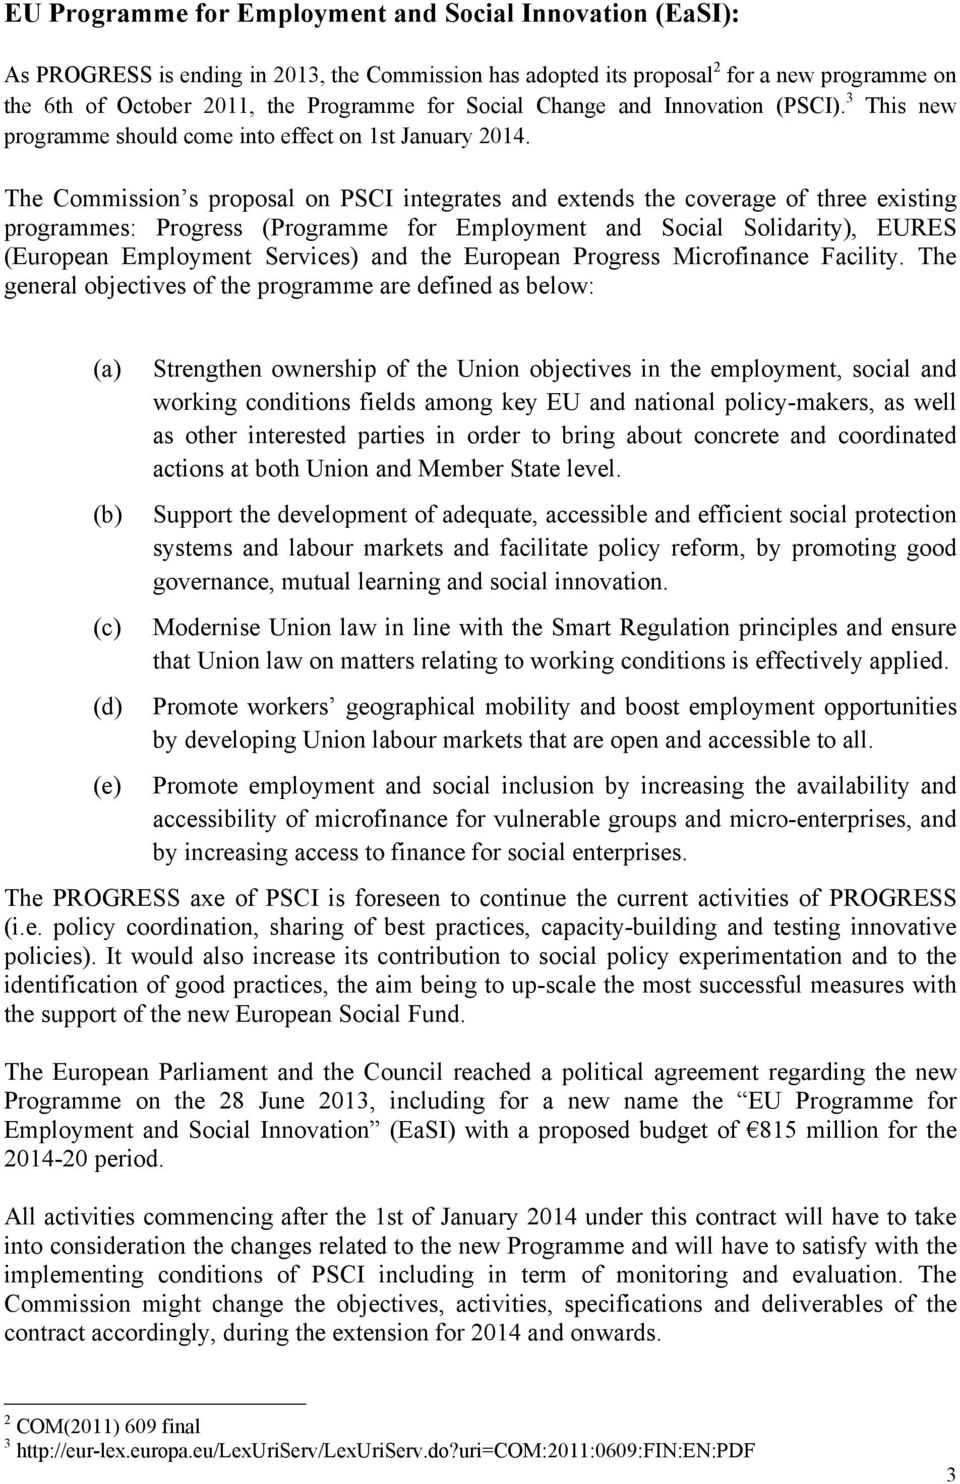 The Commission s proposal on PSCI integrates and extends the coverage of three existing programmes: Progress (Programme for Employment and Social Solidarity), EURES (European Employment Services) and